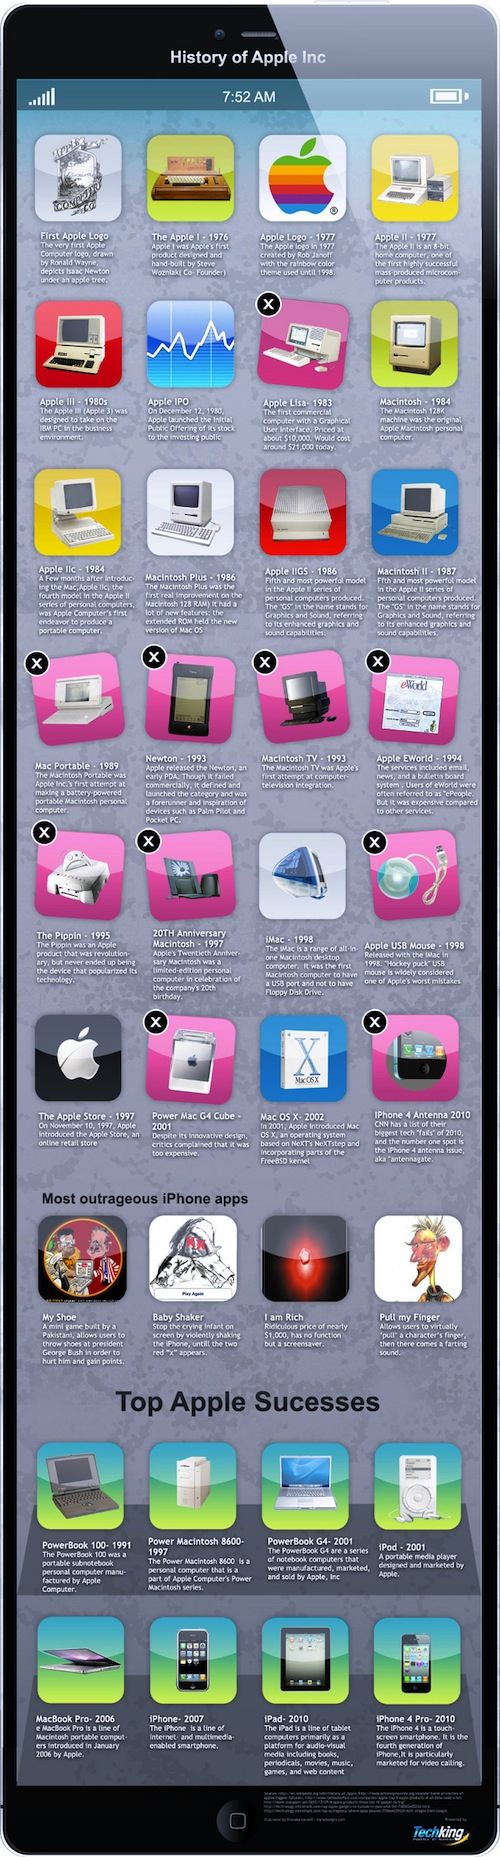 Apple y su larga historia [Infografía] - history_of_apple-1000px